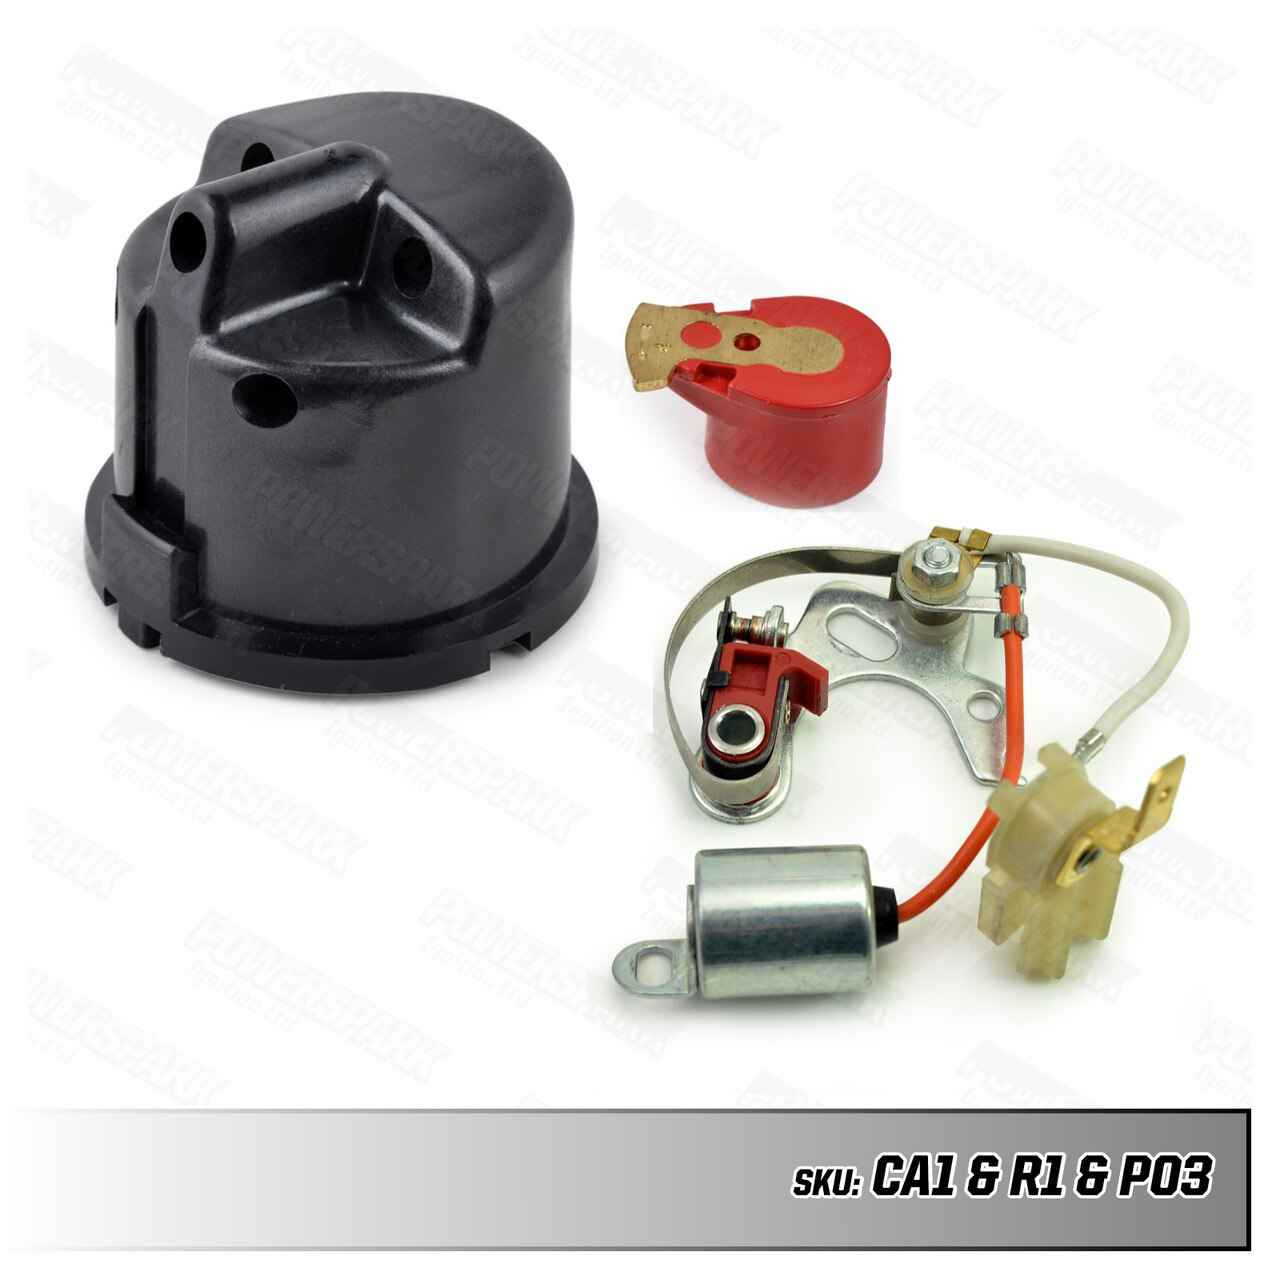 Lucas Lucas 25D Distributor Upgrade Kit